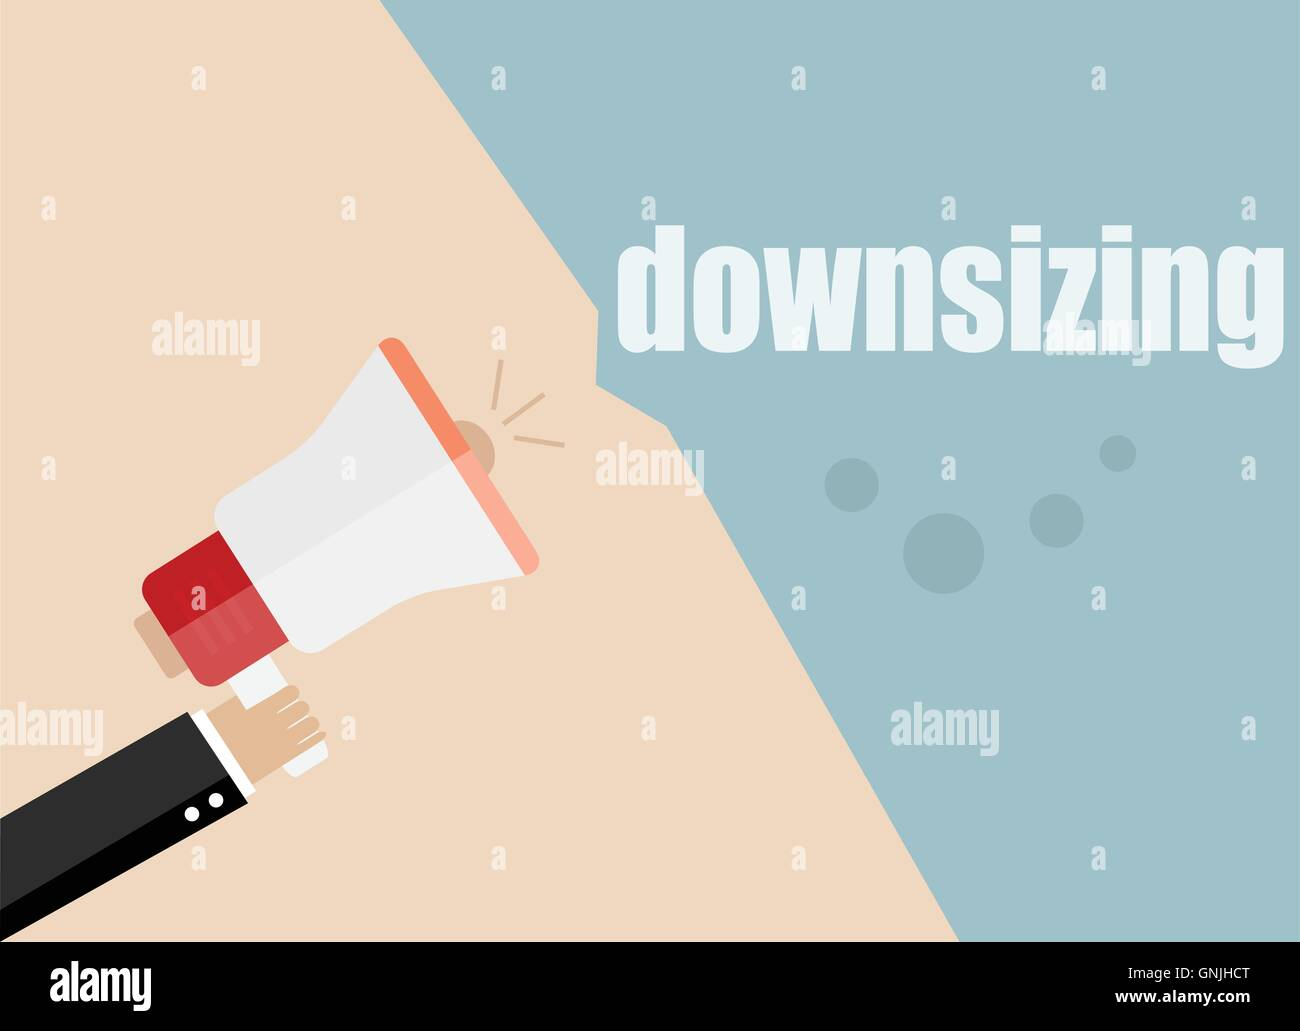 downsizing. Megaphone Flat design vector business illustration concept Digital marketing business man holding megaphone - Stock Vector